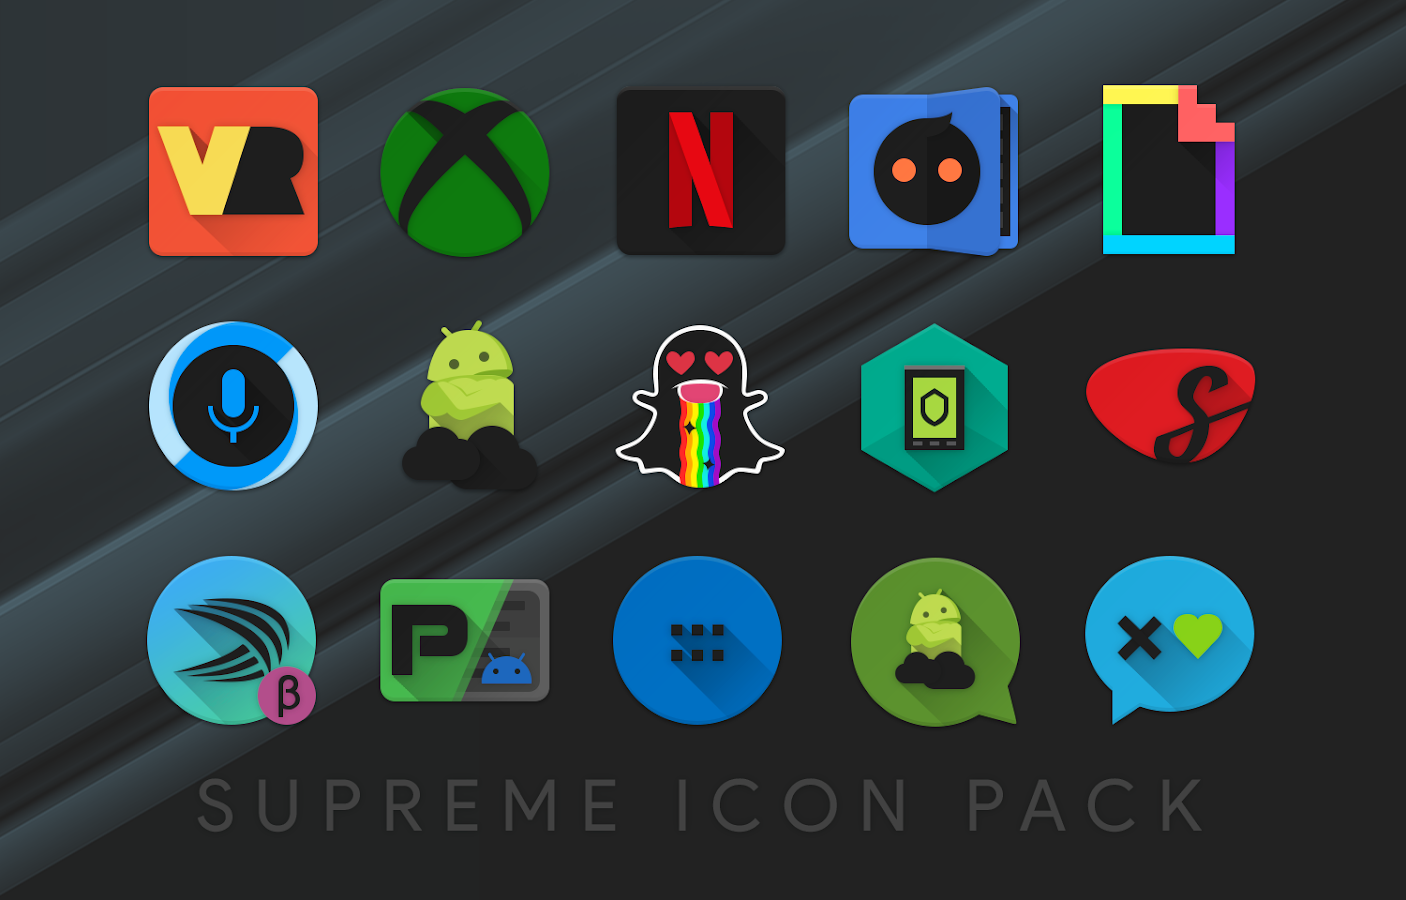 Supreme Icon Pack Screenshot 1